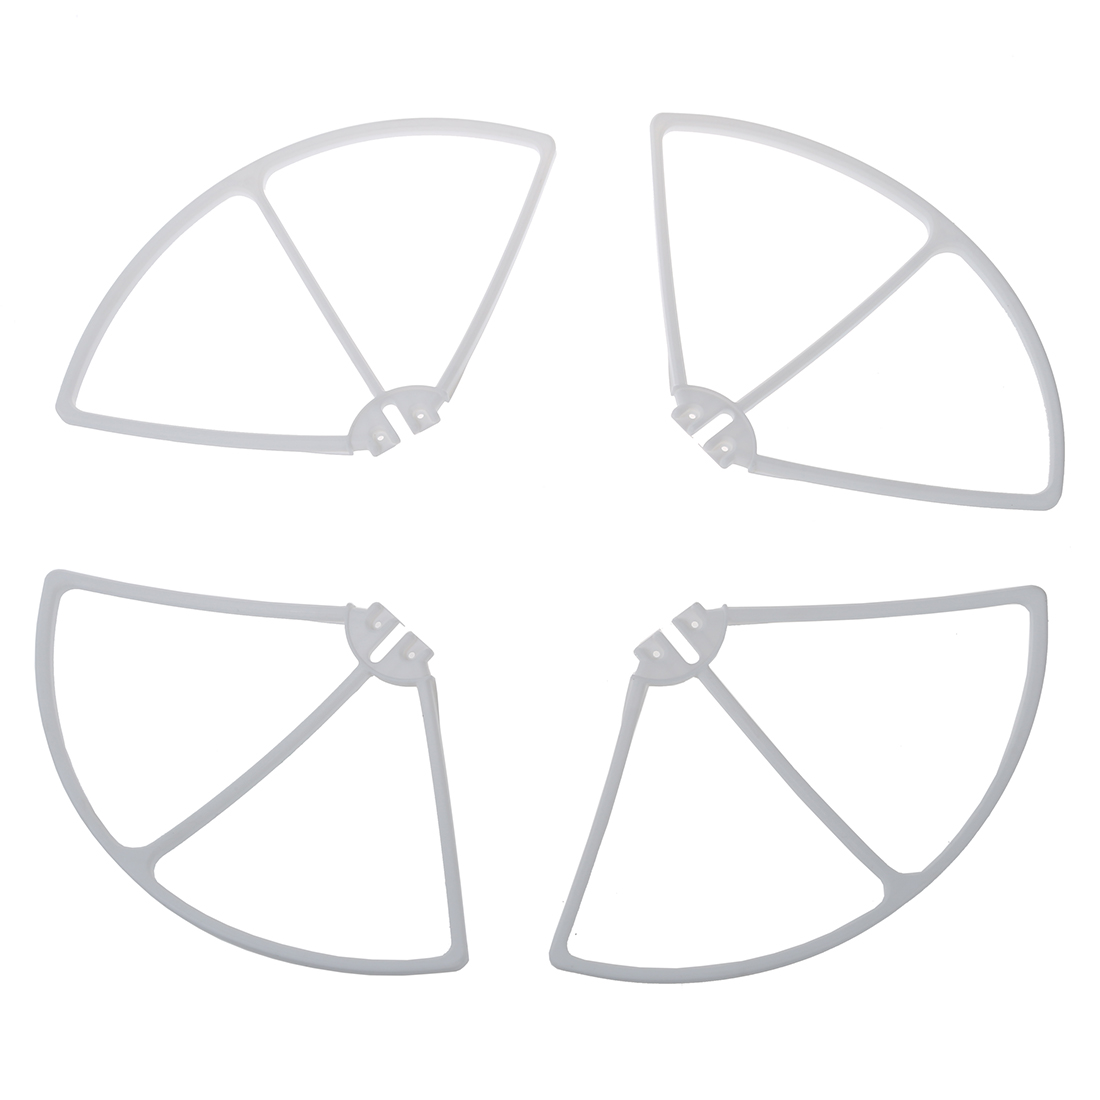 Fbil Spares For Syma X8c X8w Venture Rc Quadcopter 4pcs